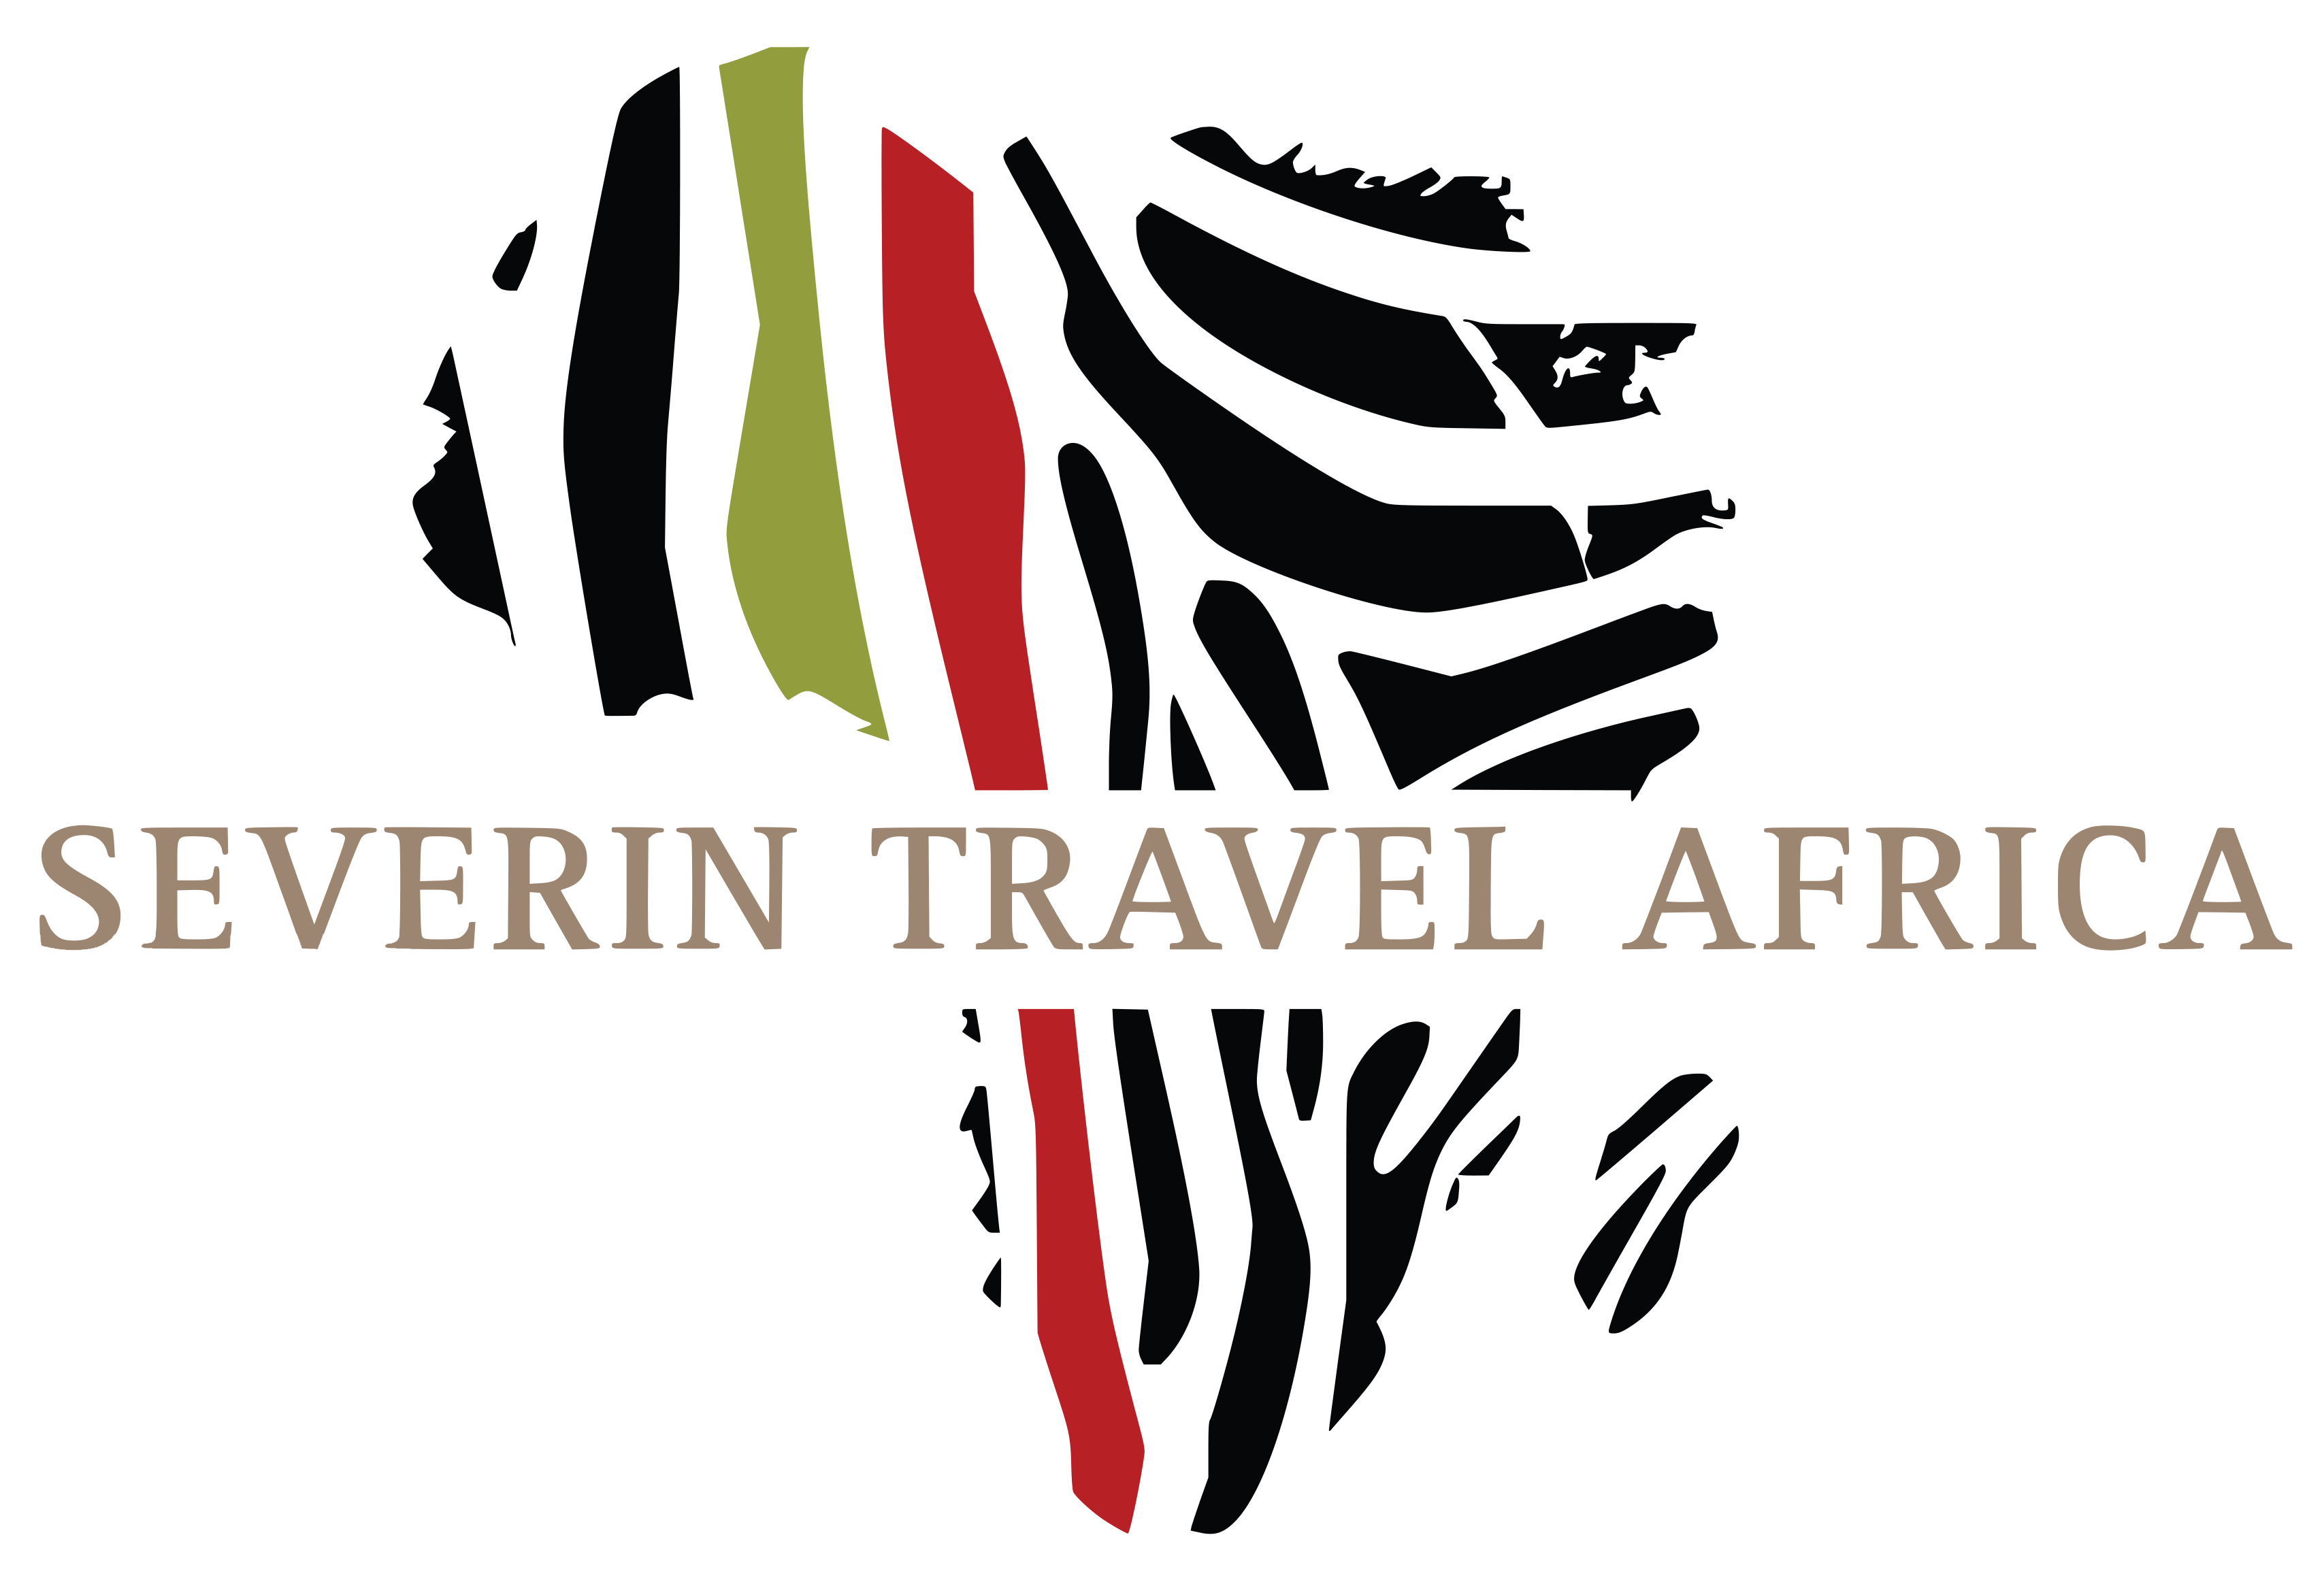 Severin-Travel-Africa